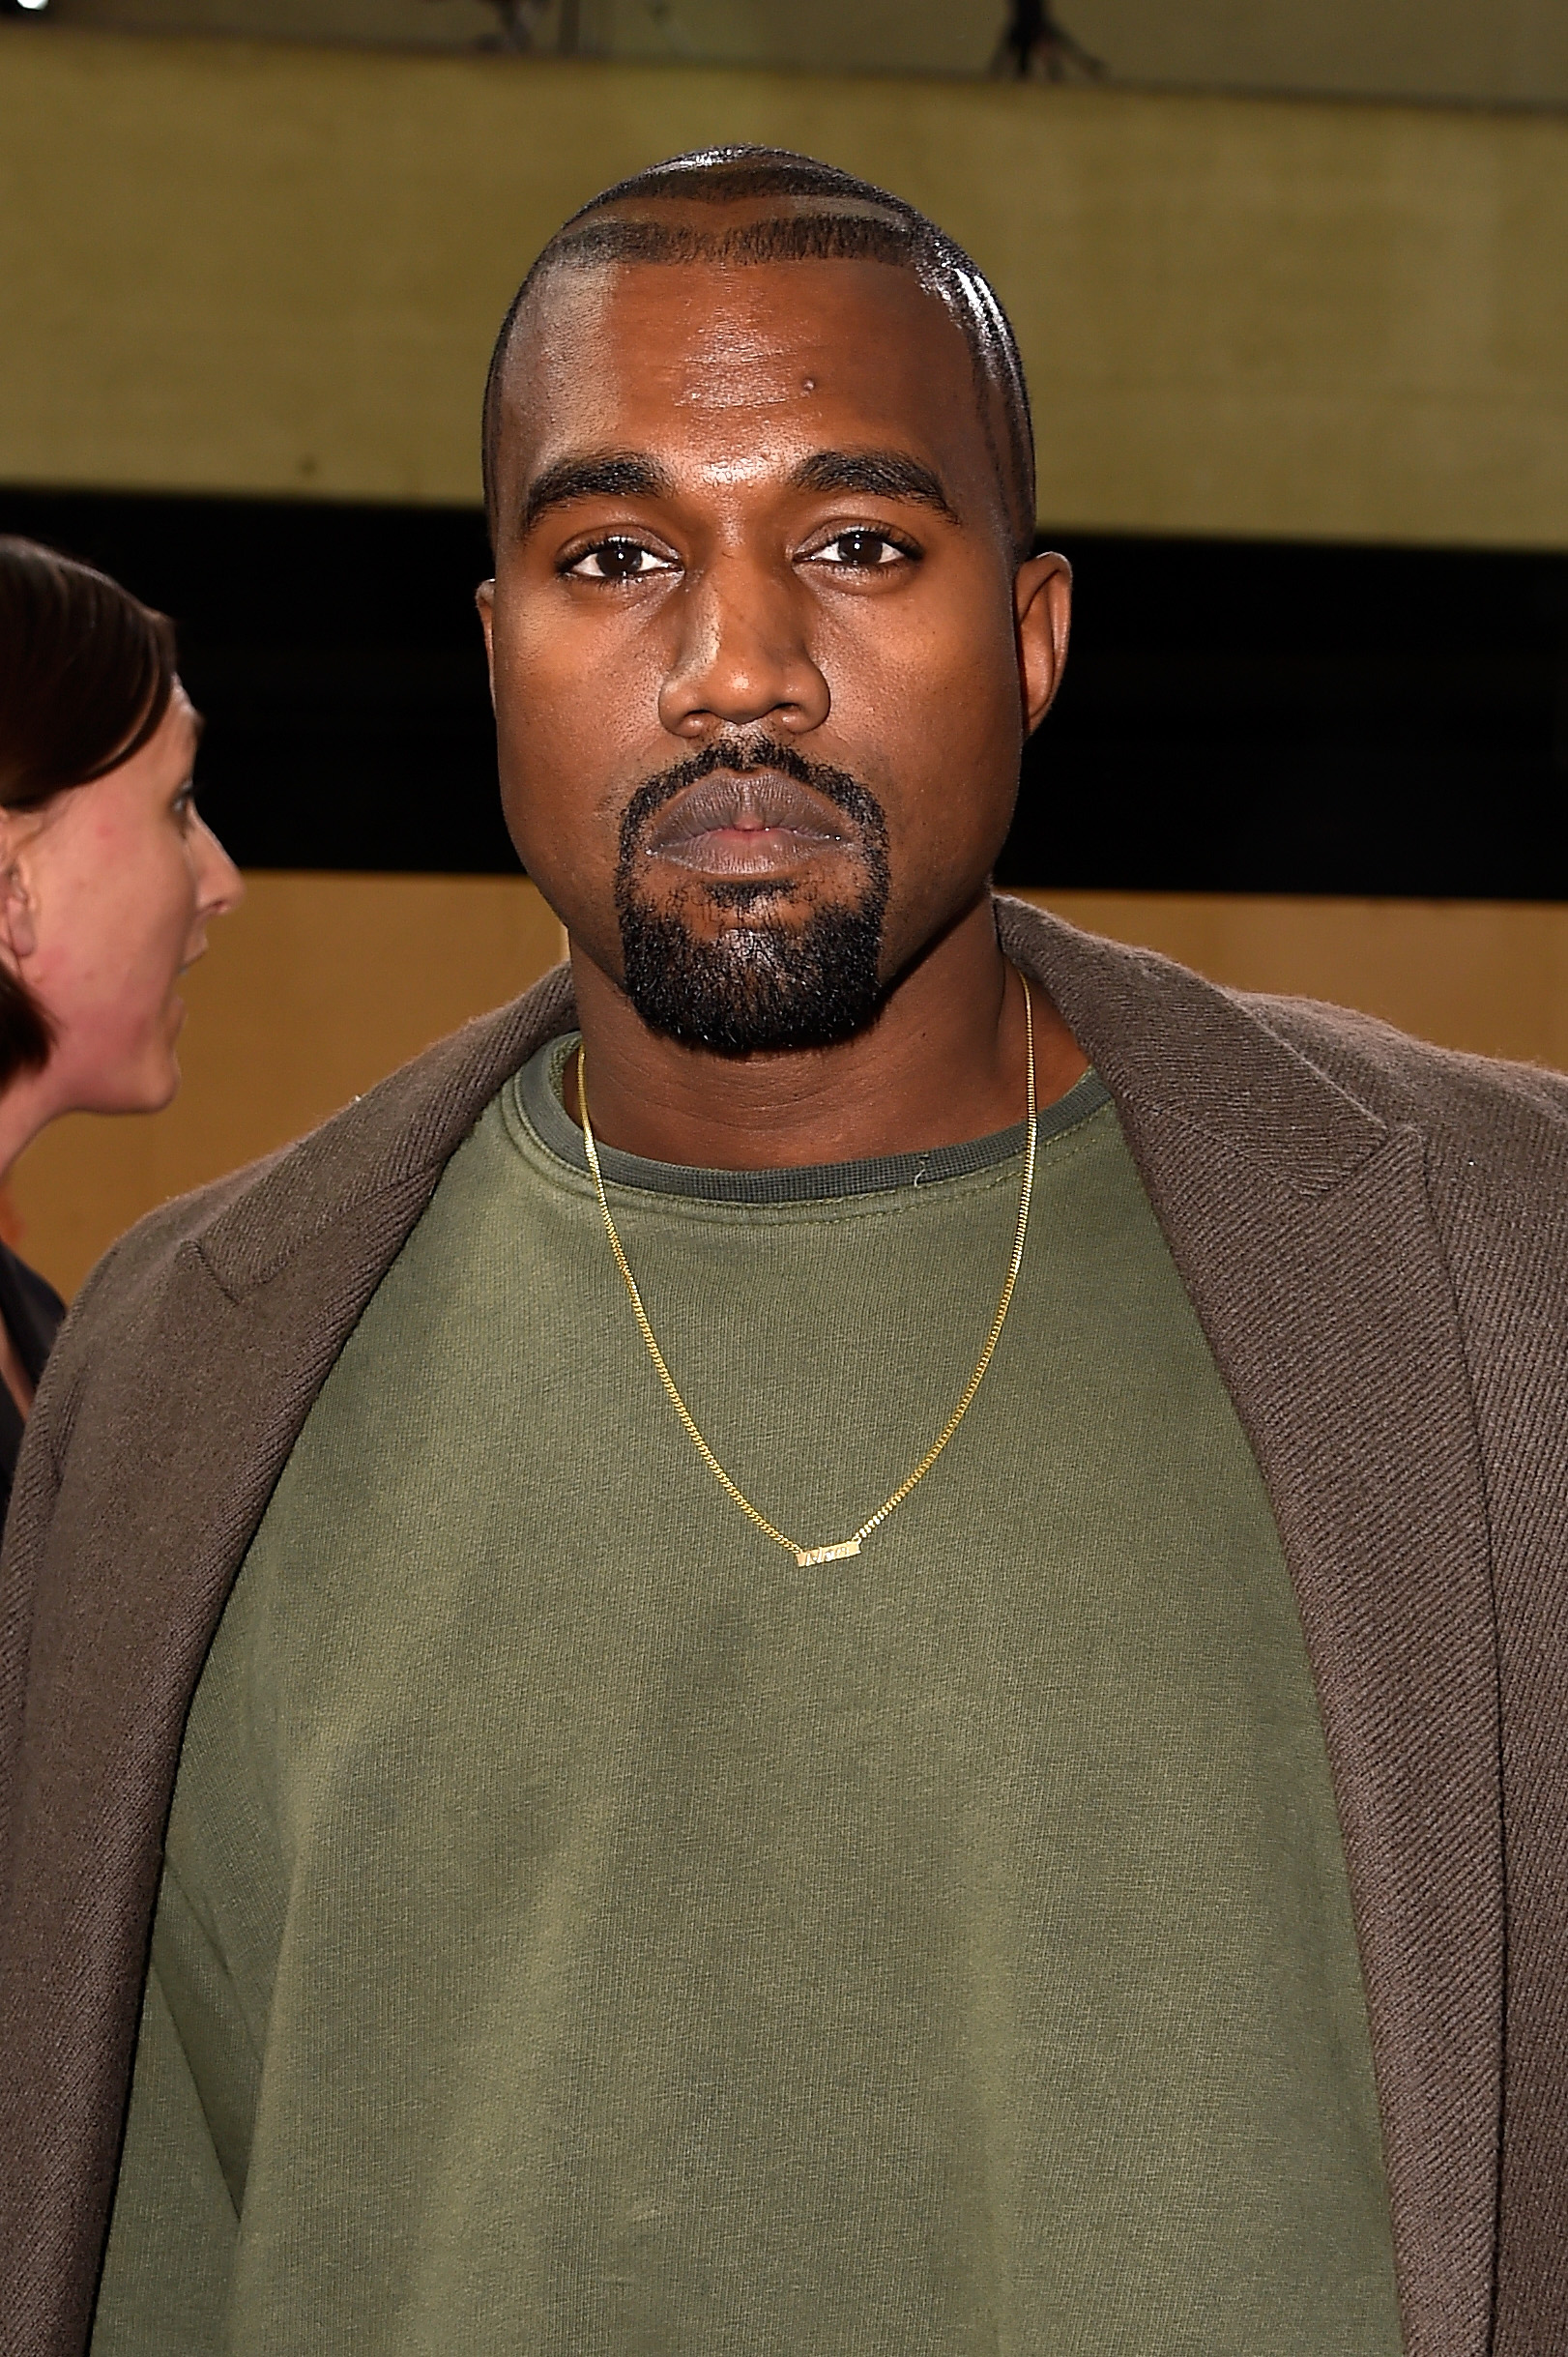 PARIS, FRANCE - SEPTEMBER 28:  Kanye West attends the Celine show as part of the Paris Fashion Week Womenswear Spring/Summer 2015 on September 28, 2014 in Paris, France.